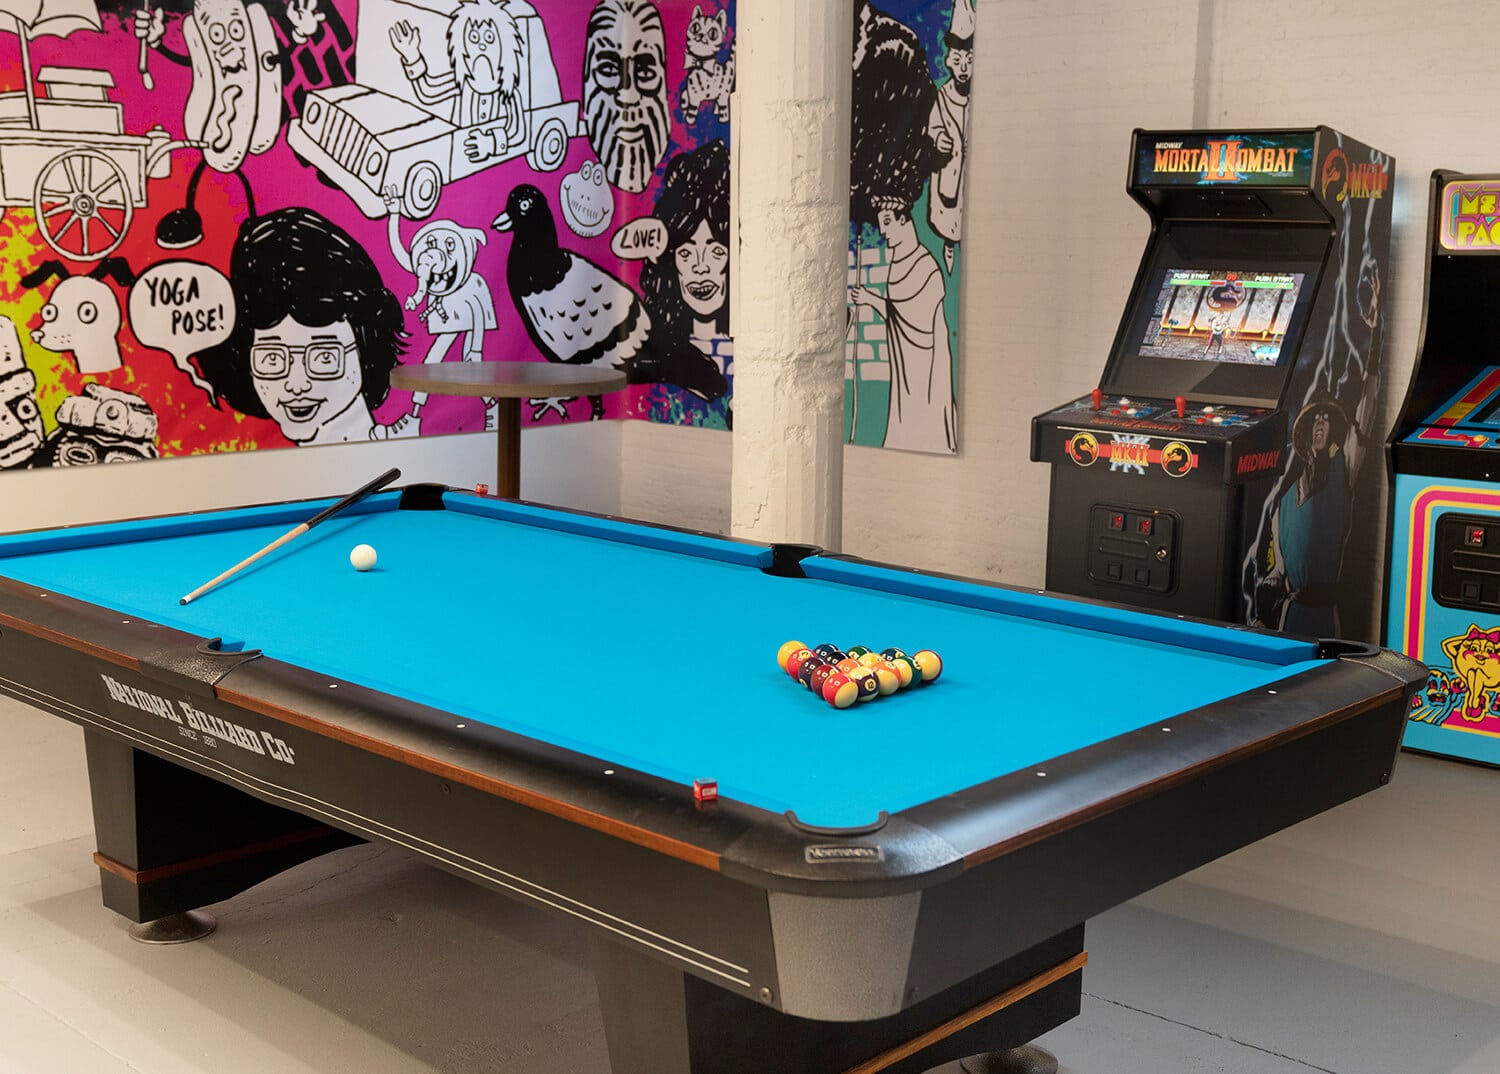 A pool table and arcade games at Mountainside Addiction Treatment Center, Chelsea NYC.